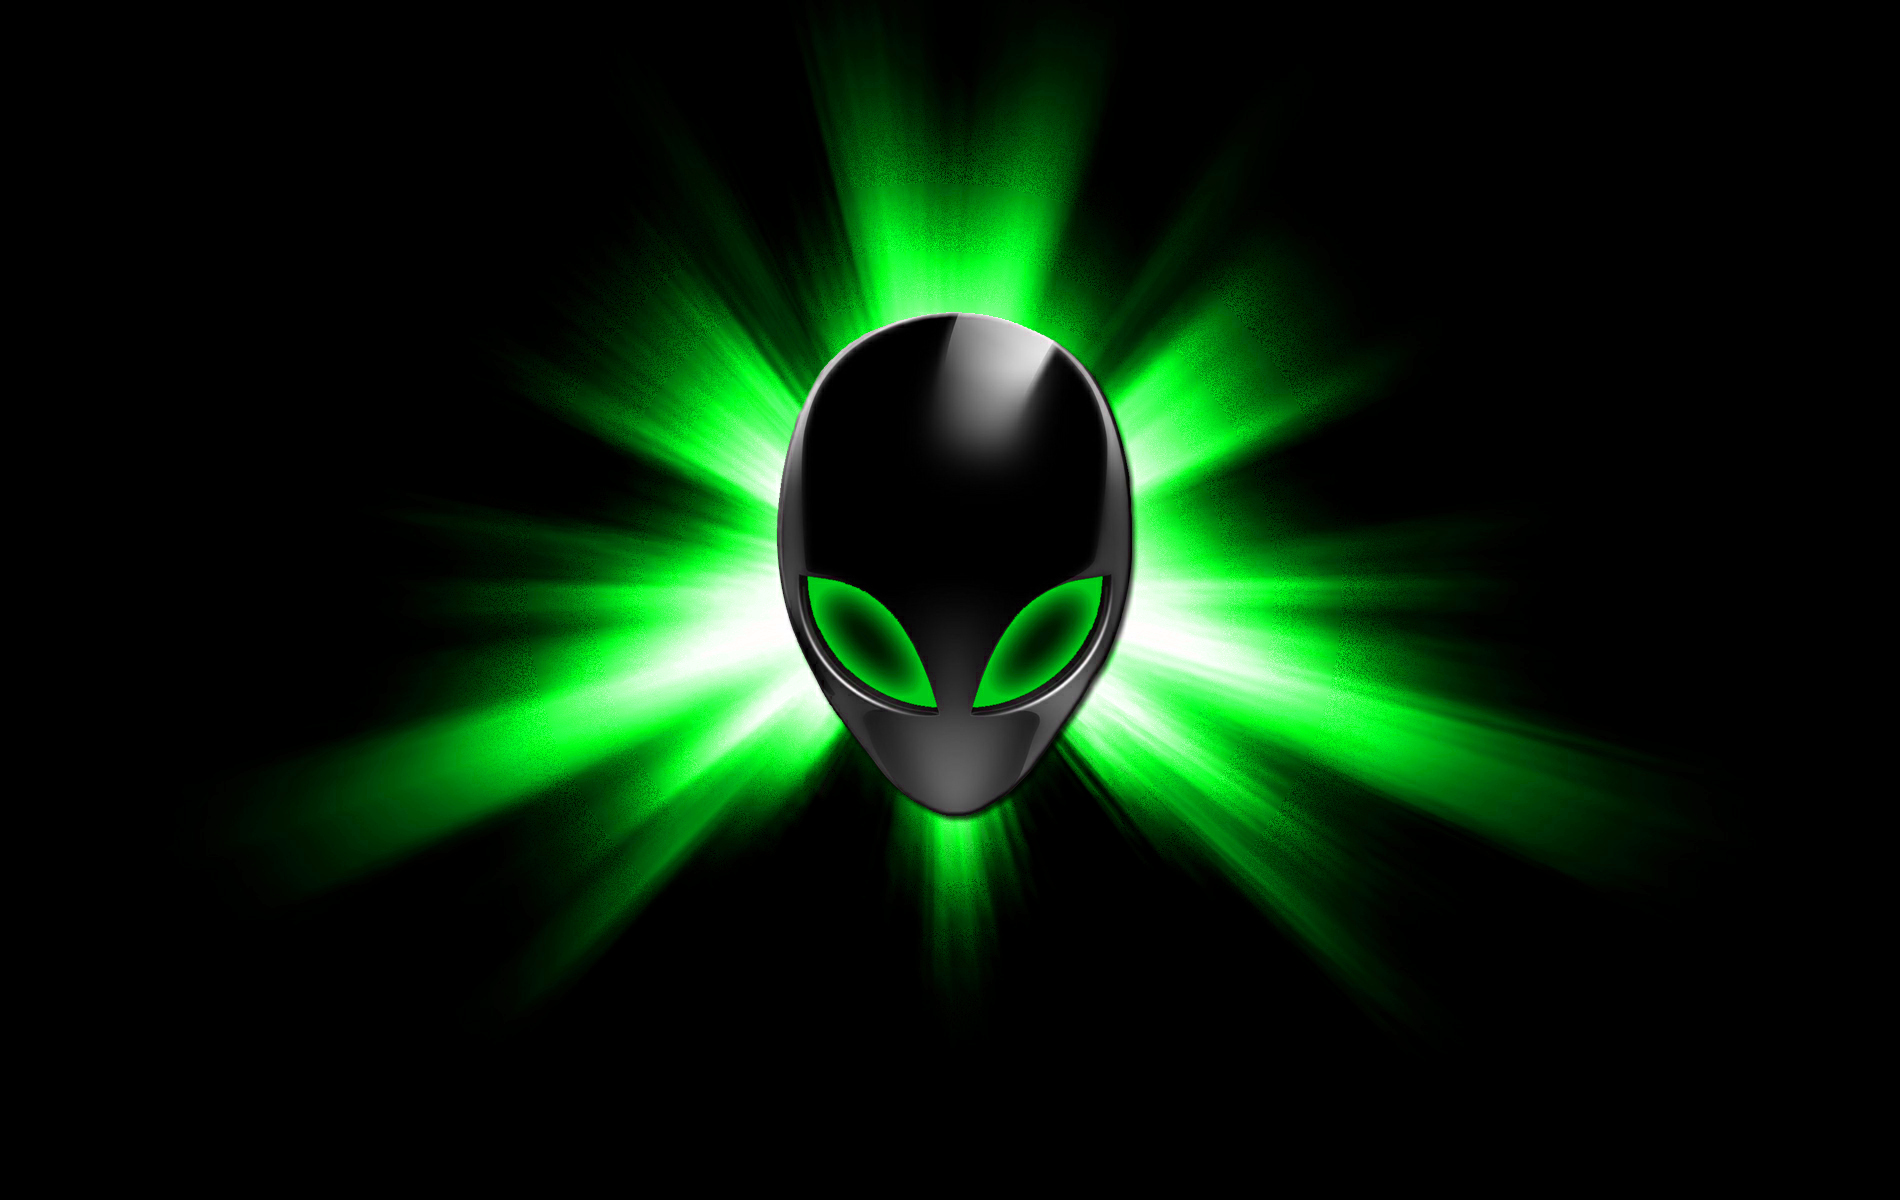 star alienware green by darkangelkrys customization wallpaper mac pc 1900x1200